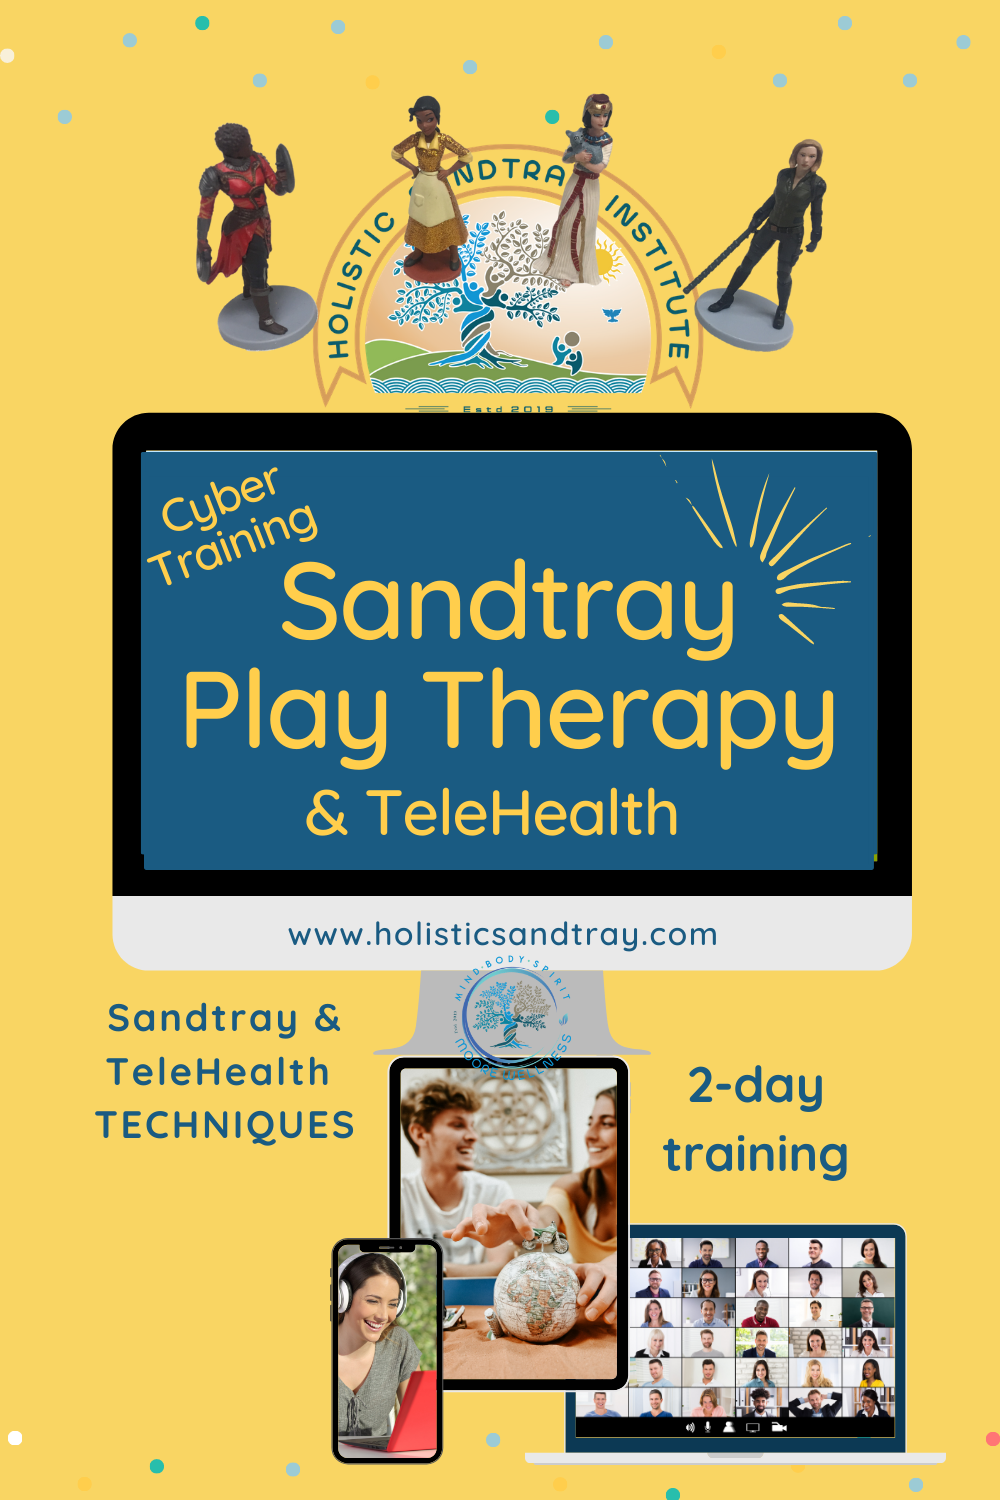 Cyber Training in Sandtray Play Therapy  & TeleHealth  TRAINING LIVE ZOOM plus IN-DEPTH COURSE  12 CEs Live virtual event Hands-on Sandtray Therapy  Limited spots! https://holisticsandtray.teachable.com/courses/